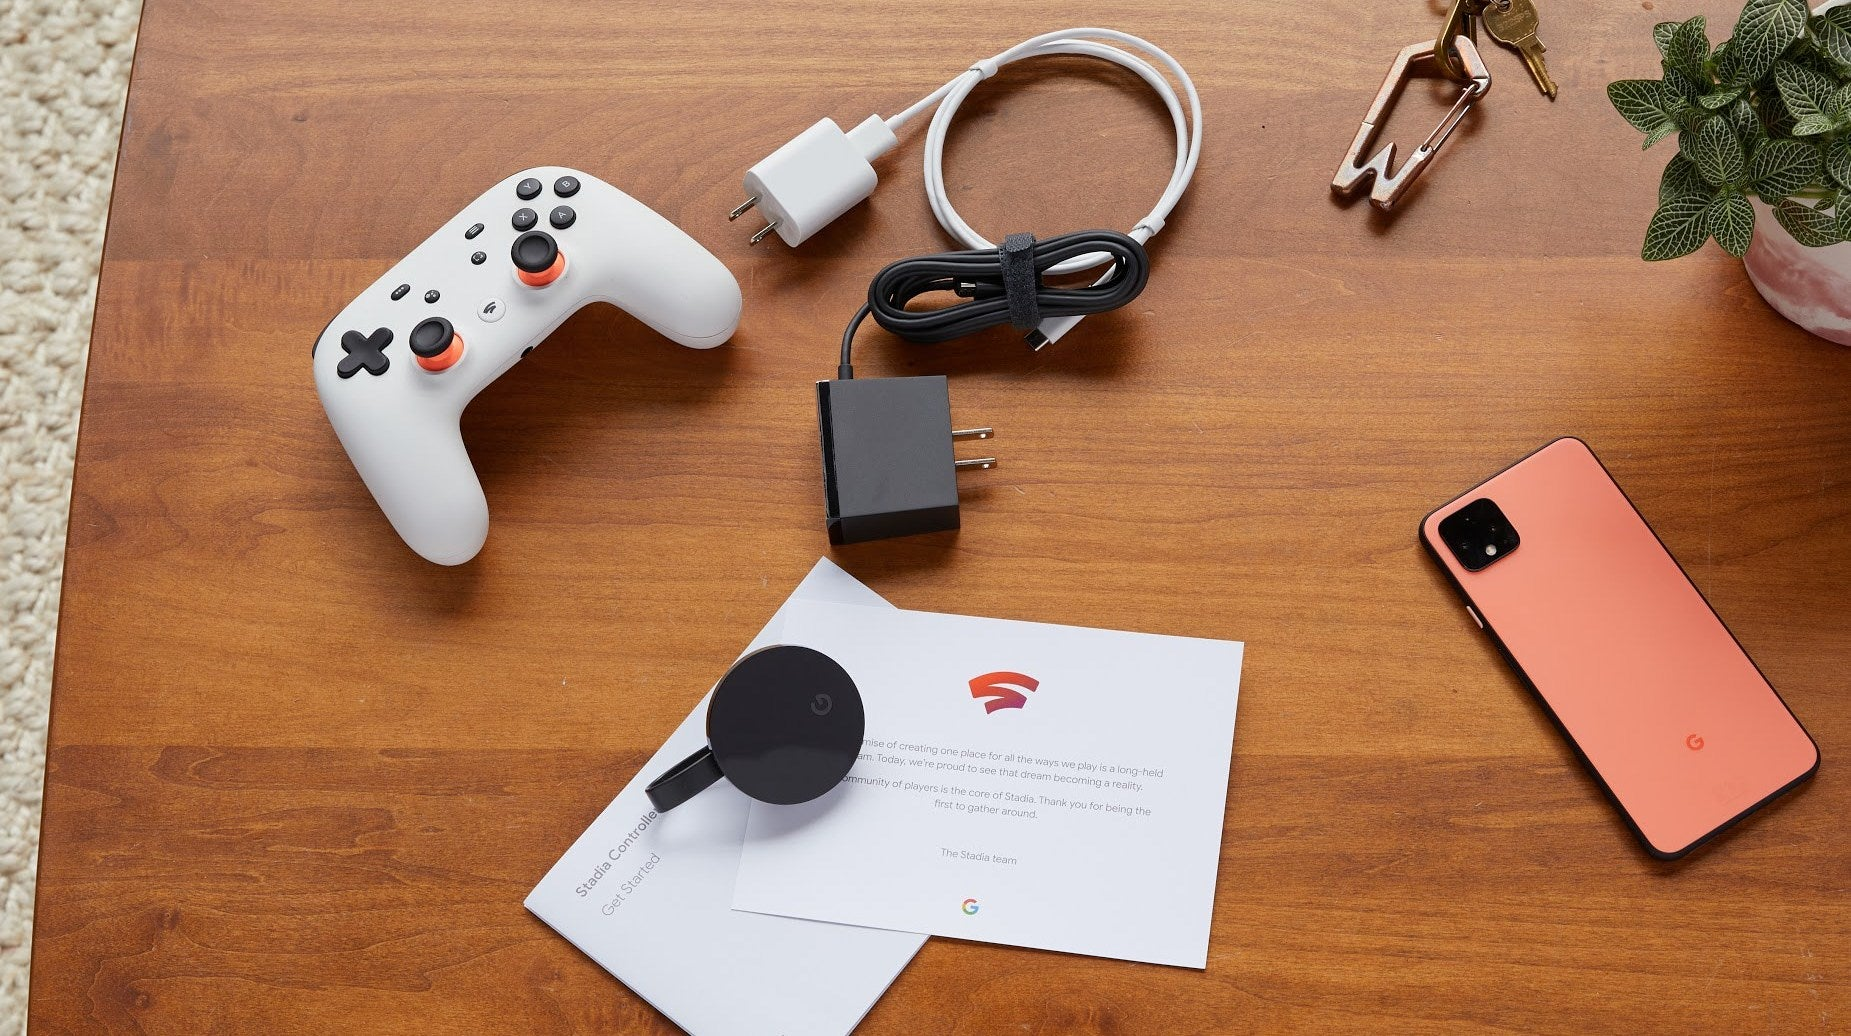 Google Stadia Post-Mortem: What We Learned From The U.S. Launch